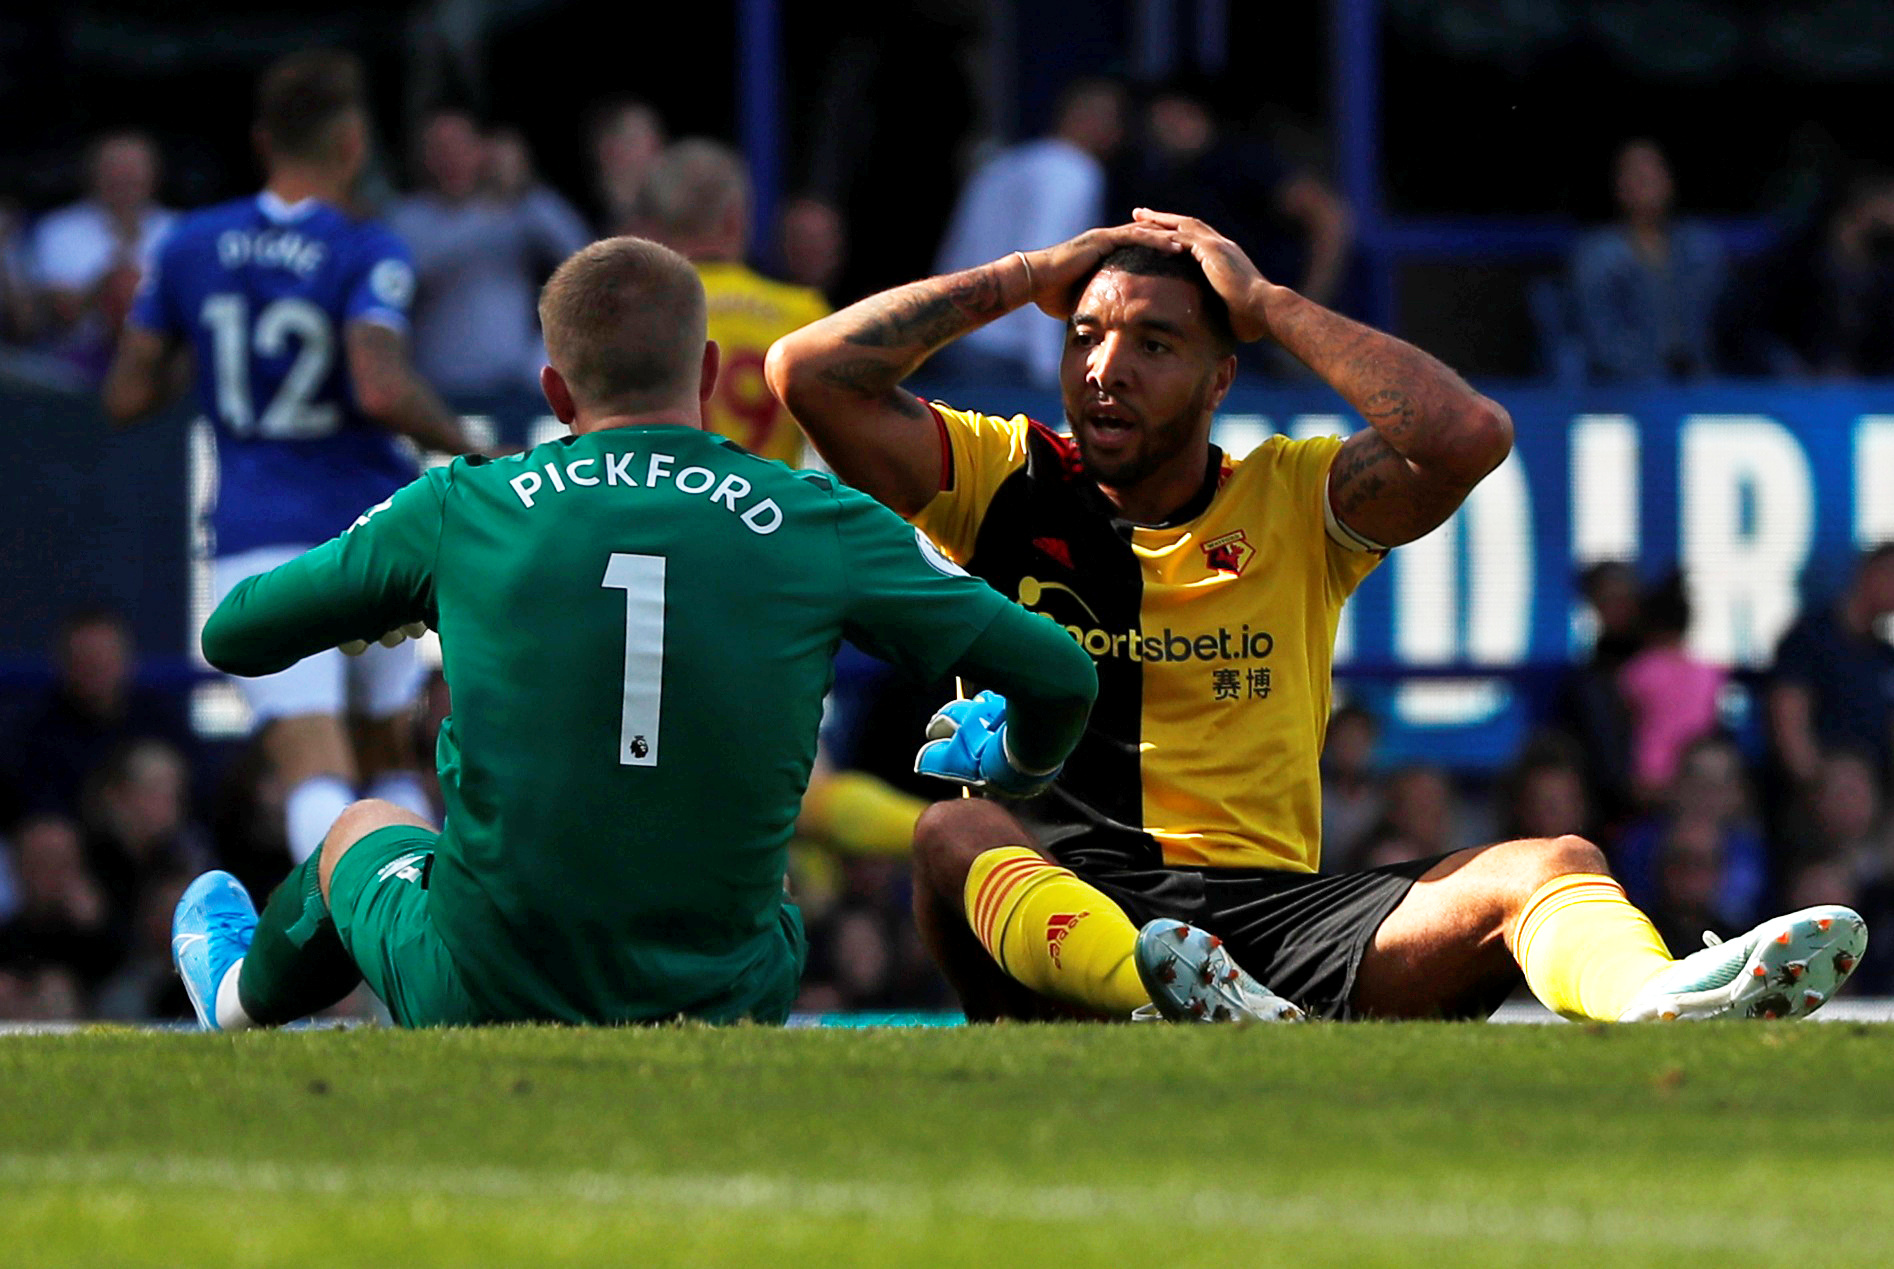 A selection of images from Watford's defeat at Everton